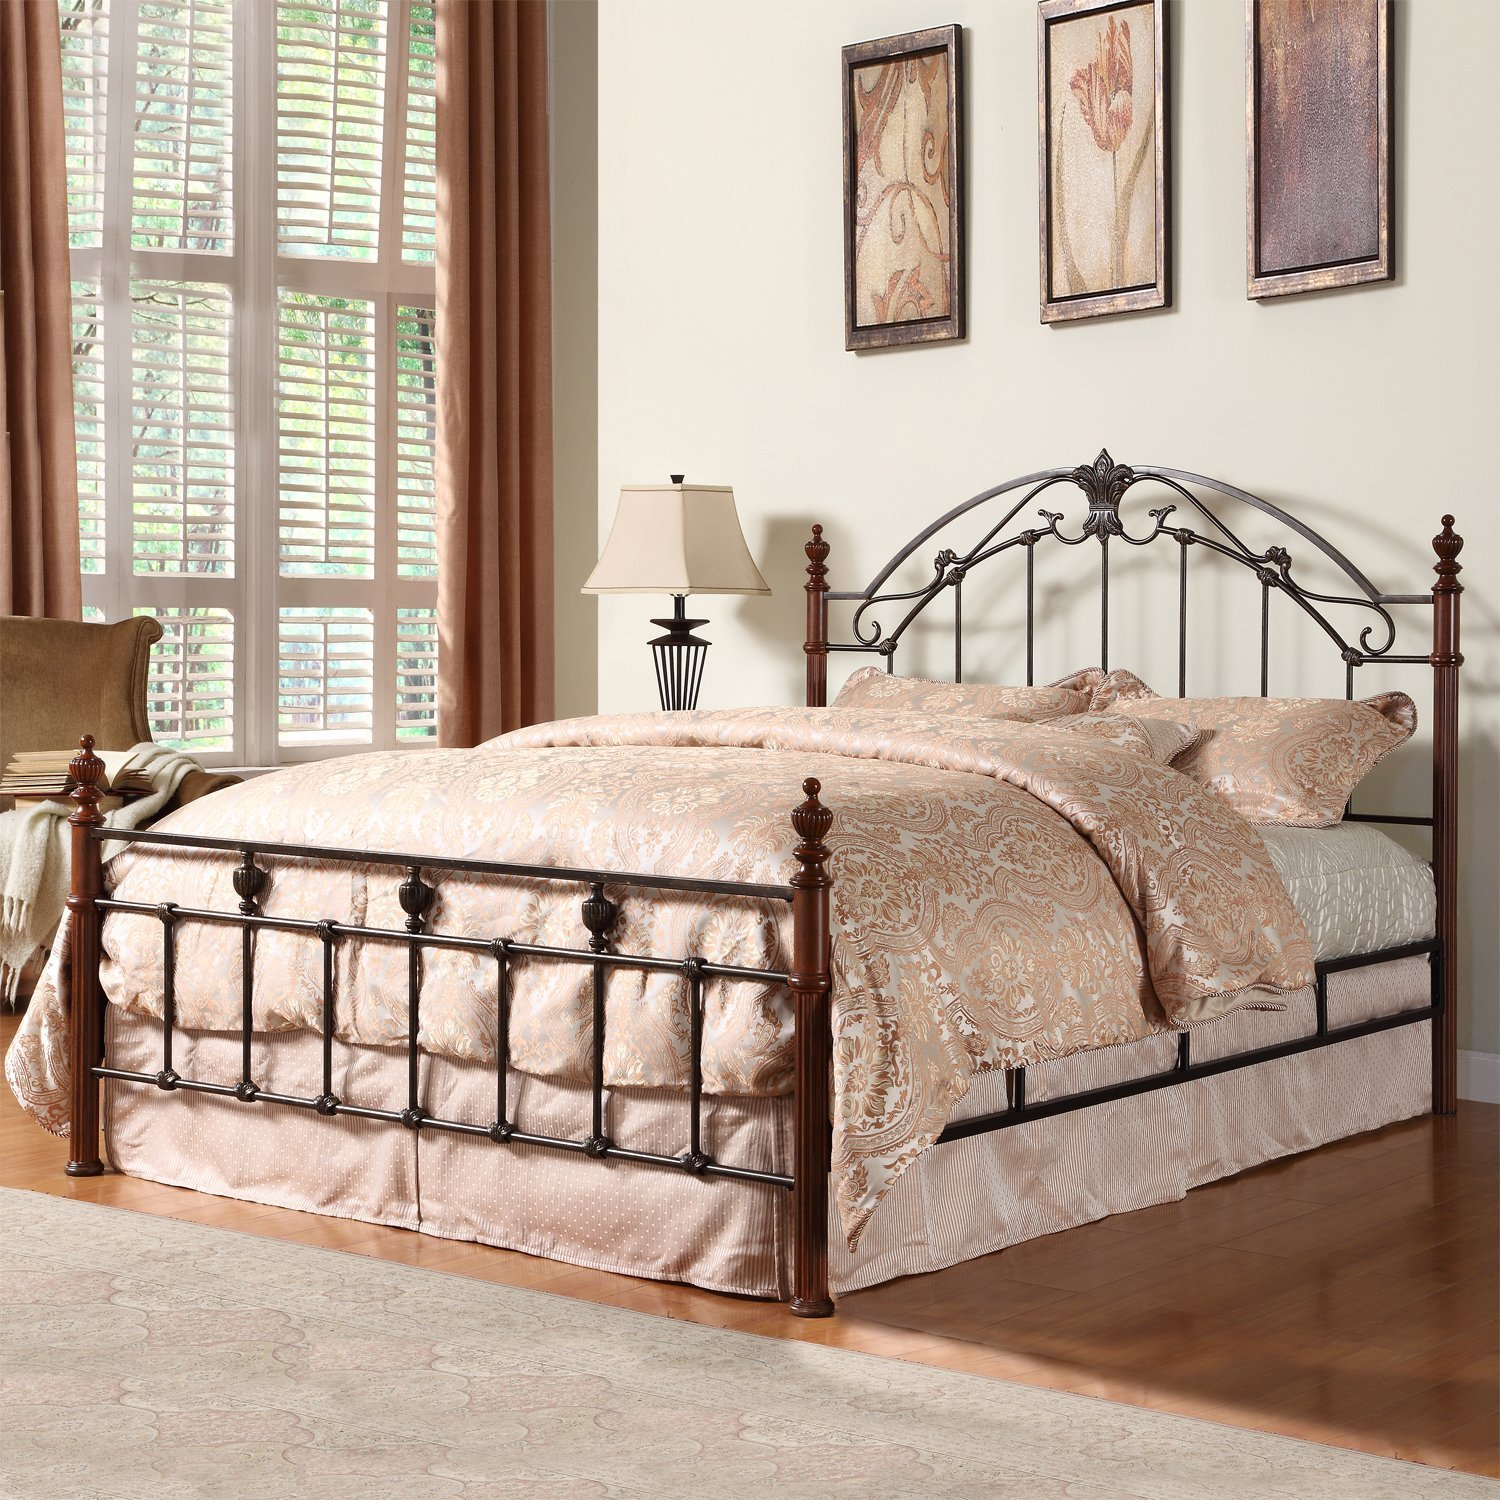 Cheap Iron Bed Set, find Iron Bed Set deals on line at Alibaba.com